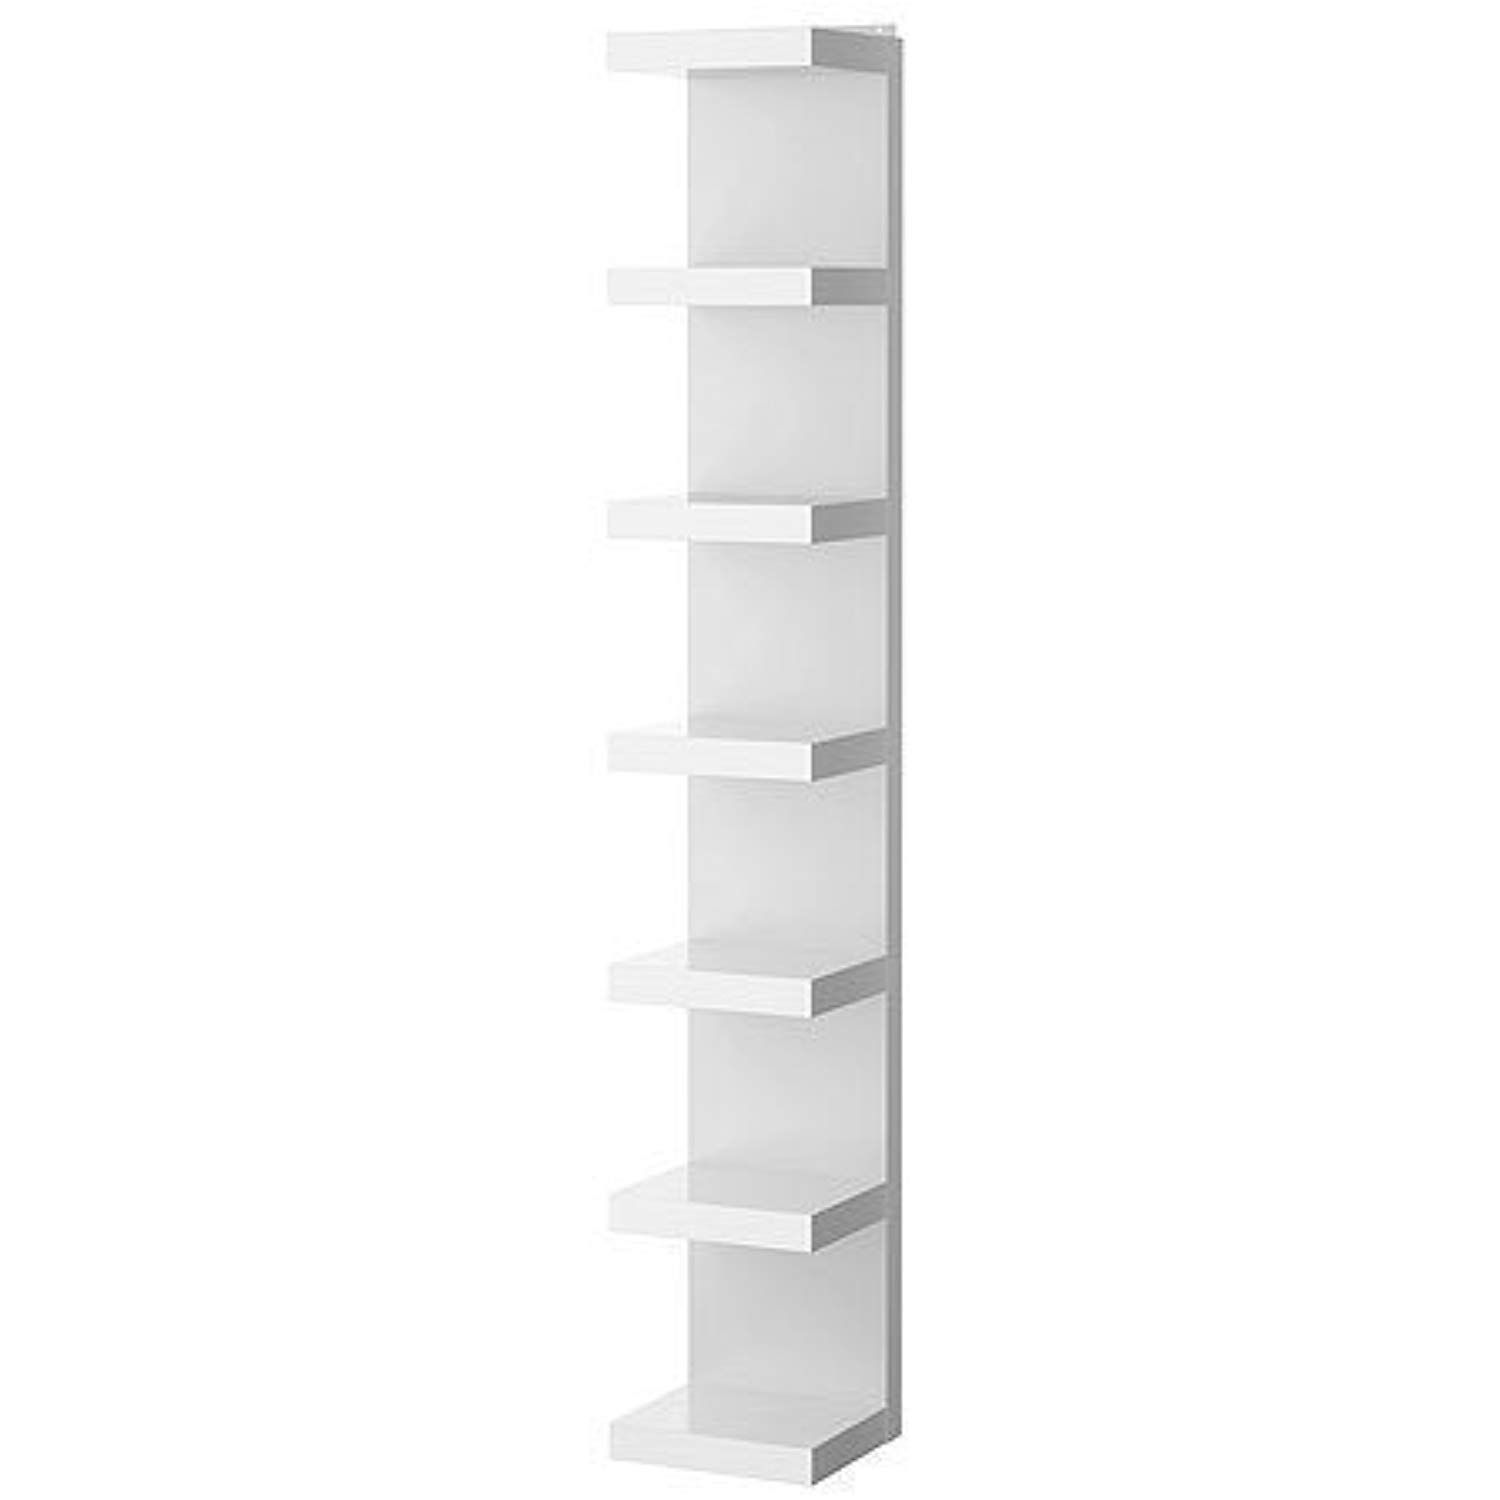 Ikea 602 821 86 New Lack Wall Shelf Unit White Continue To The Product At The Image Link This Is An Affiliate Link Ikea Lack Wall Shelf Wall Shelf Unit Ikea White Shelves